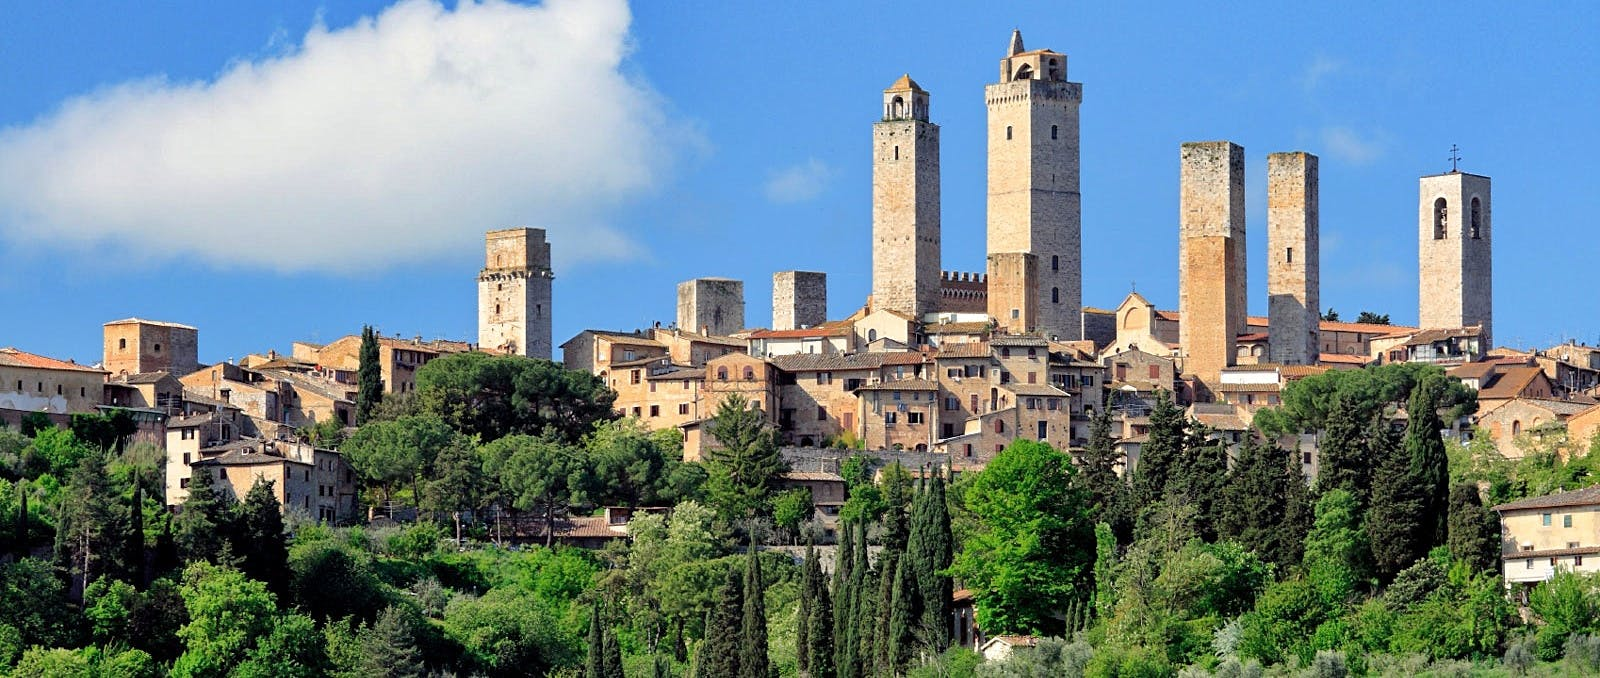 San Gimignano - Towers